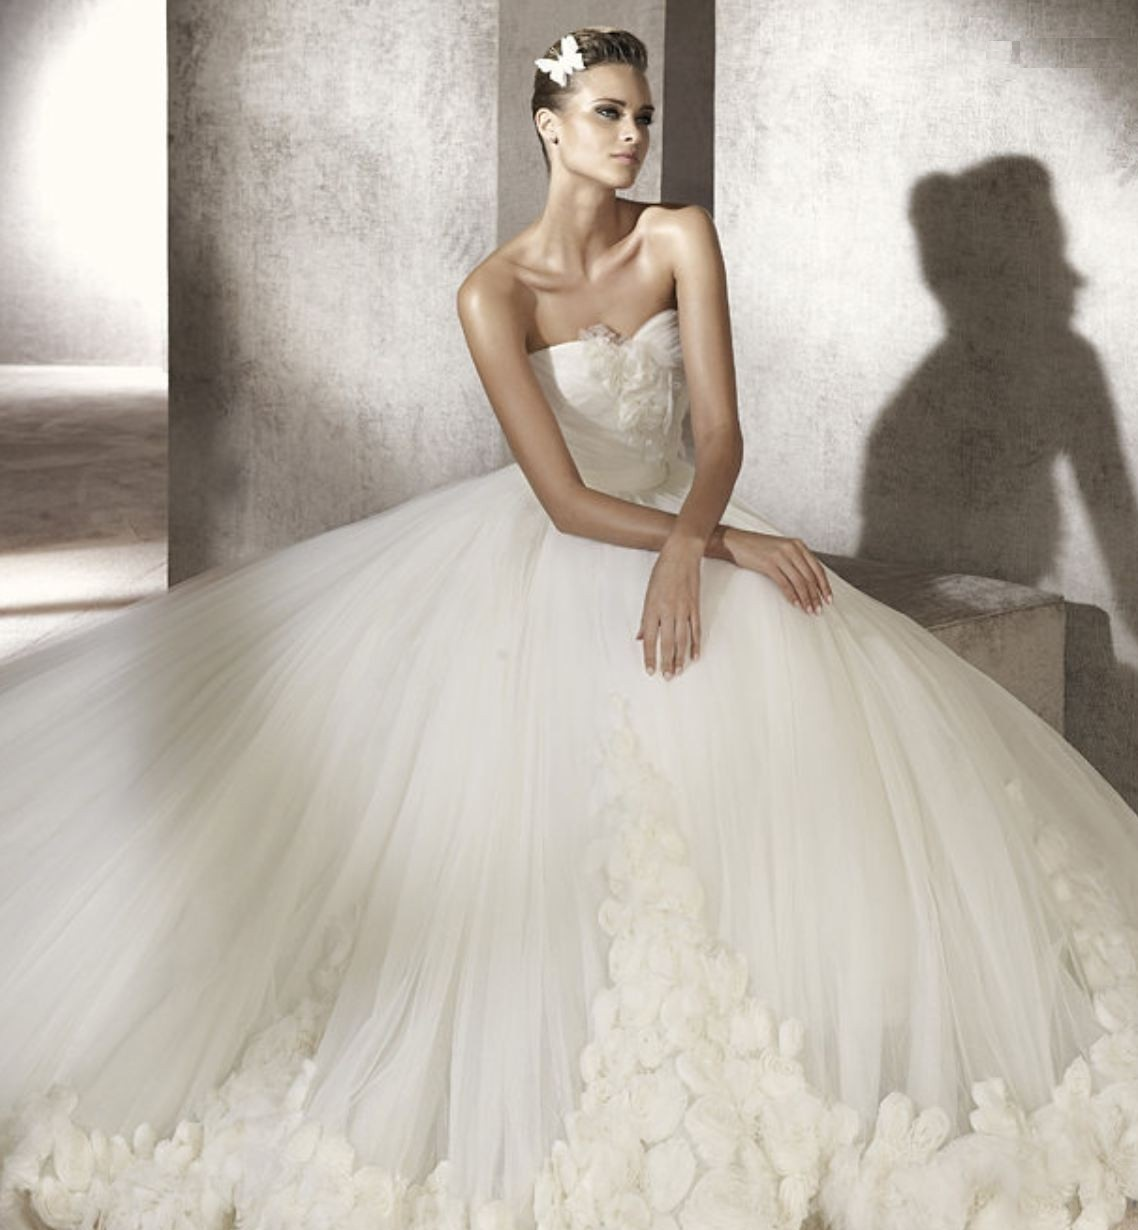 Exelent wedding dresses in birmingham image collection for Wedding dress cleaning birmingham